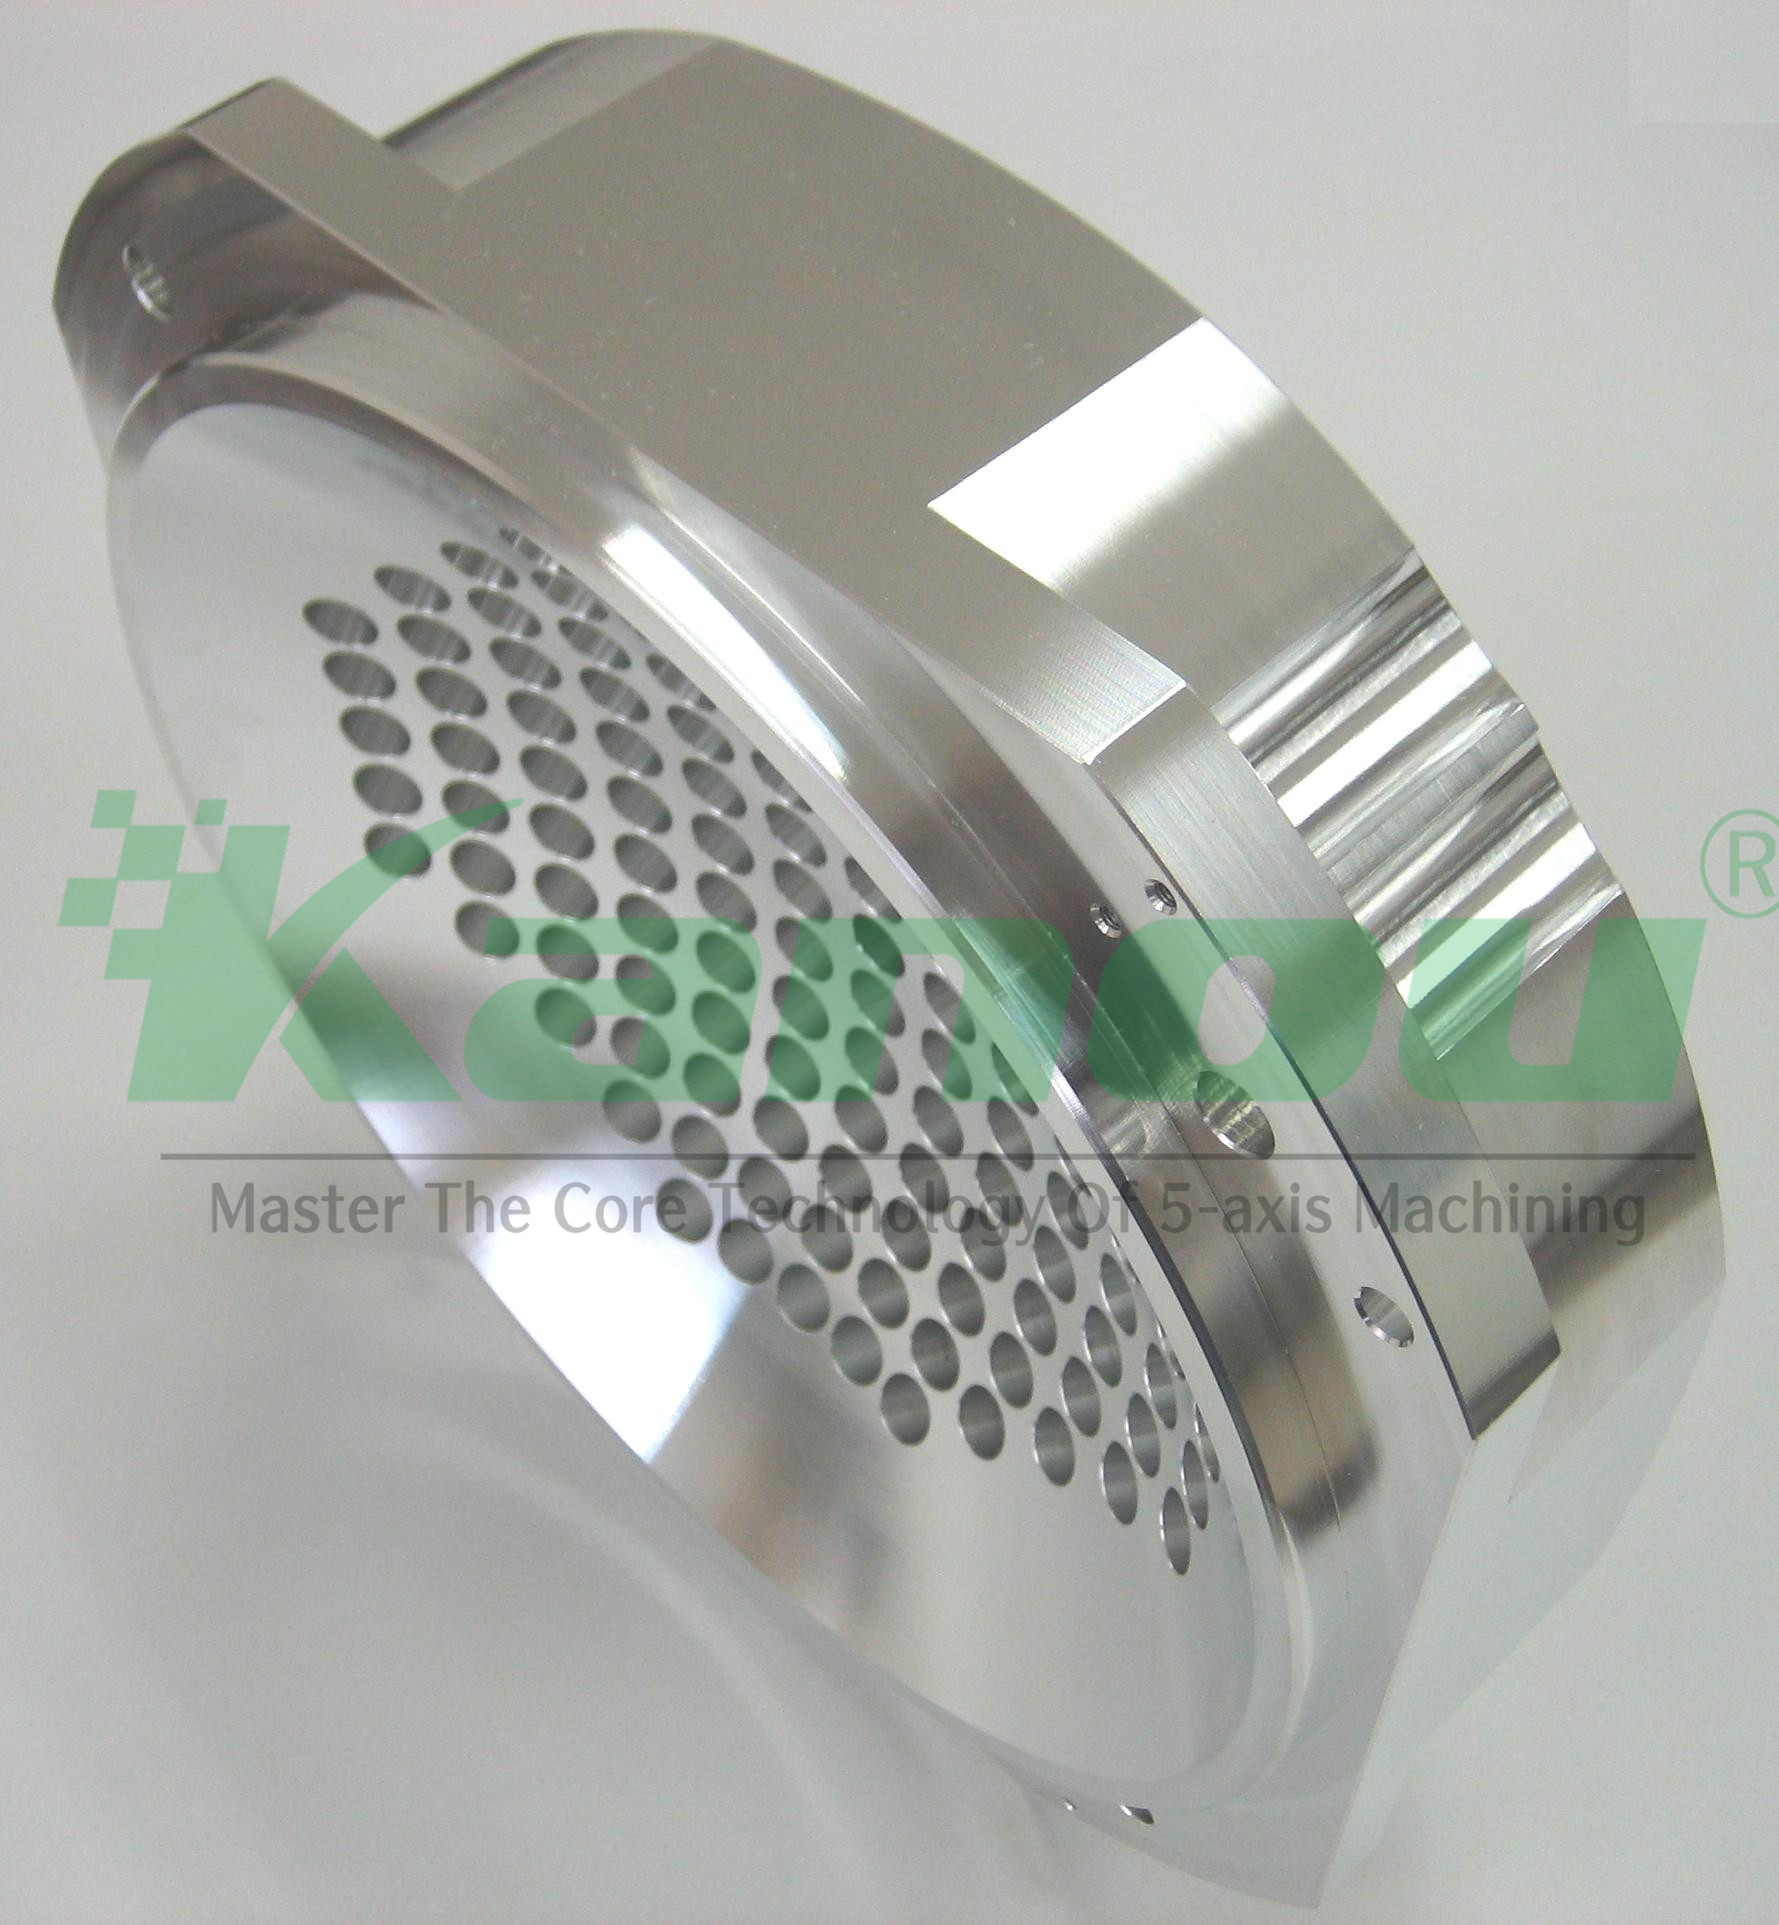 OEM 5-Axis CNC Machining Service CNC Turning and Milling Compound Parts